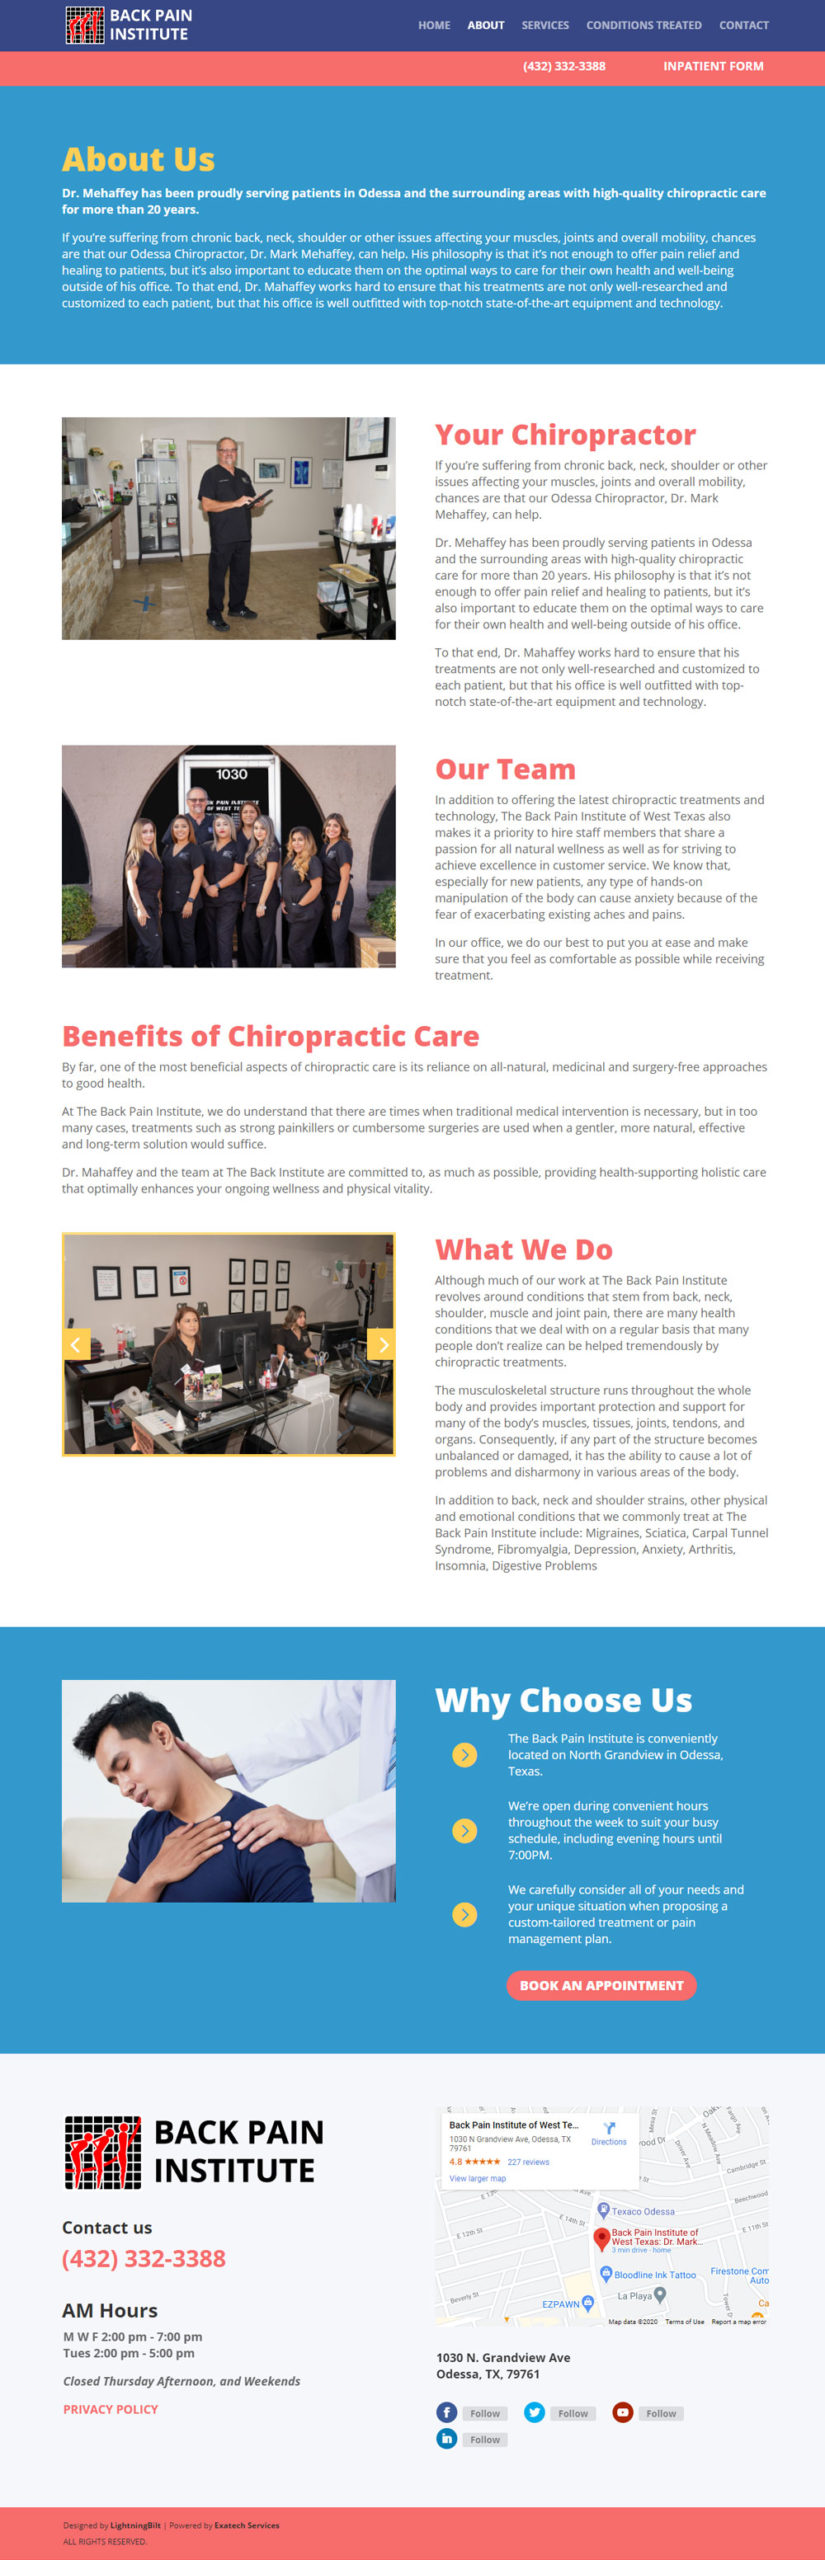 About web page for Back Pain Institute Website